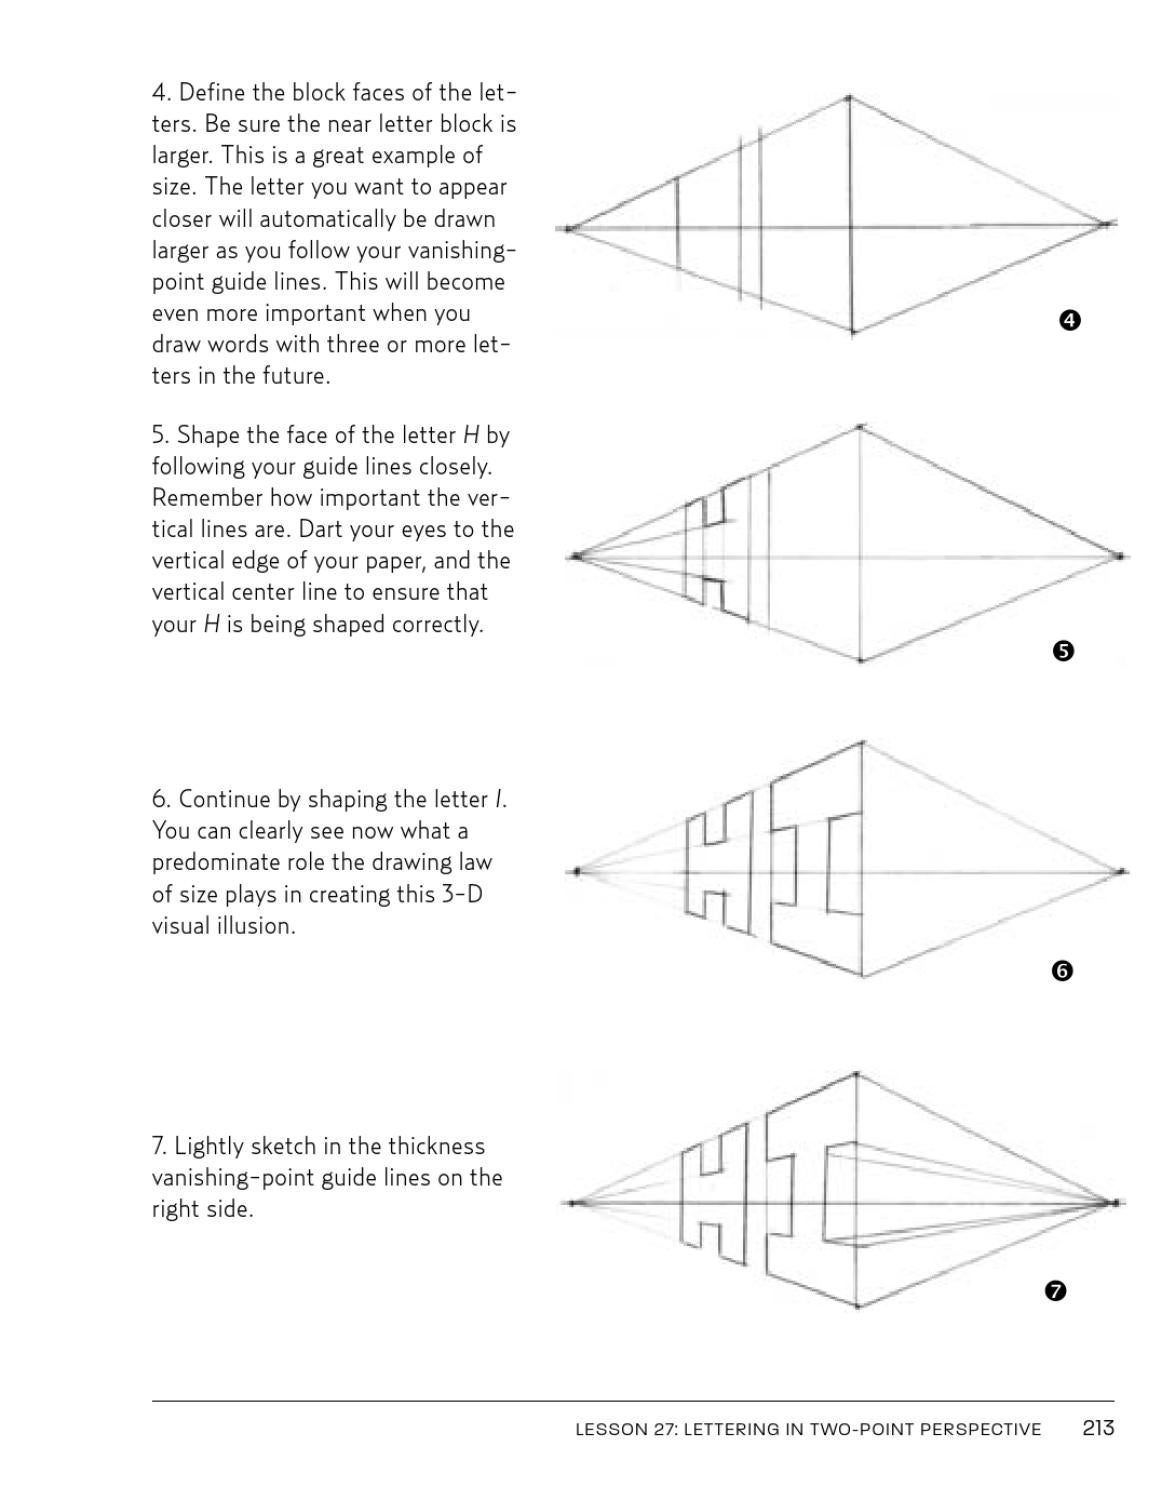 2 Point Perspective Letters : point, perspective, letters, Dibujo, Edison, Gamba, Issuu